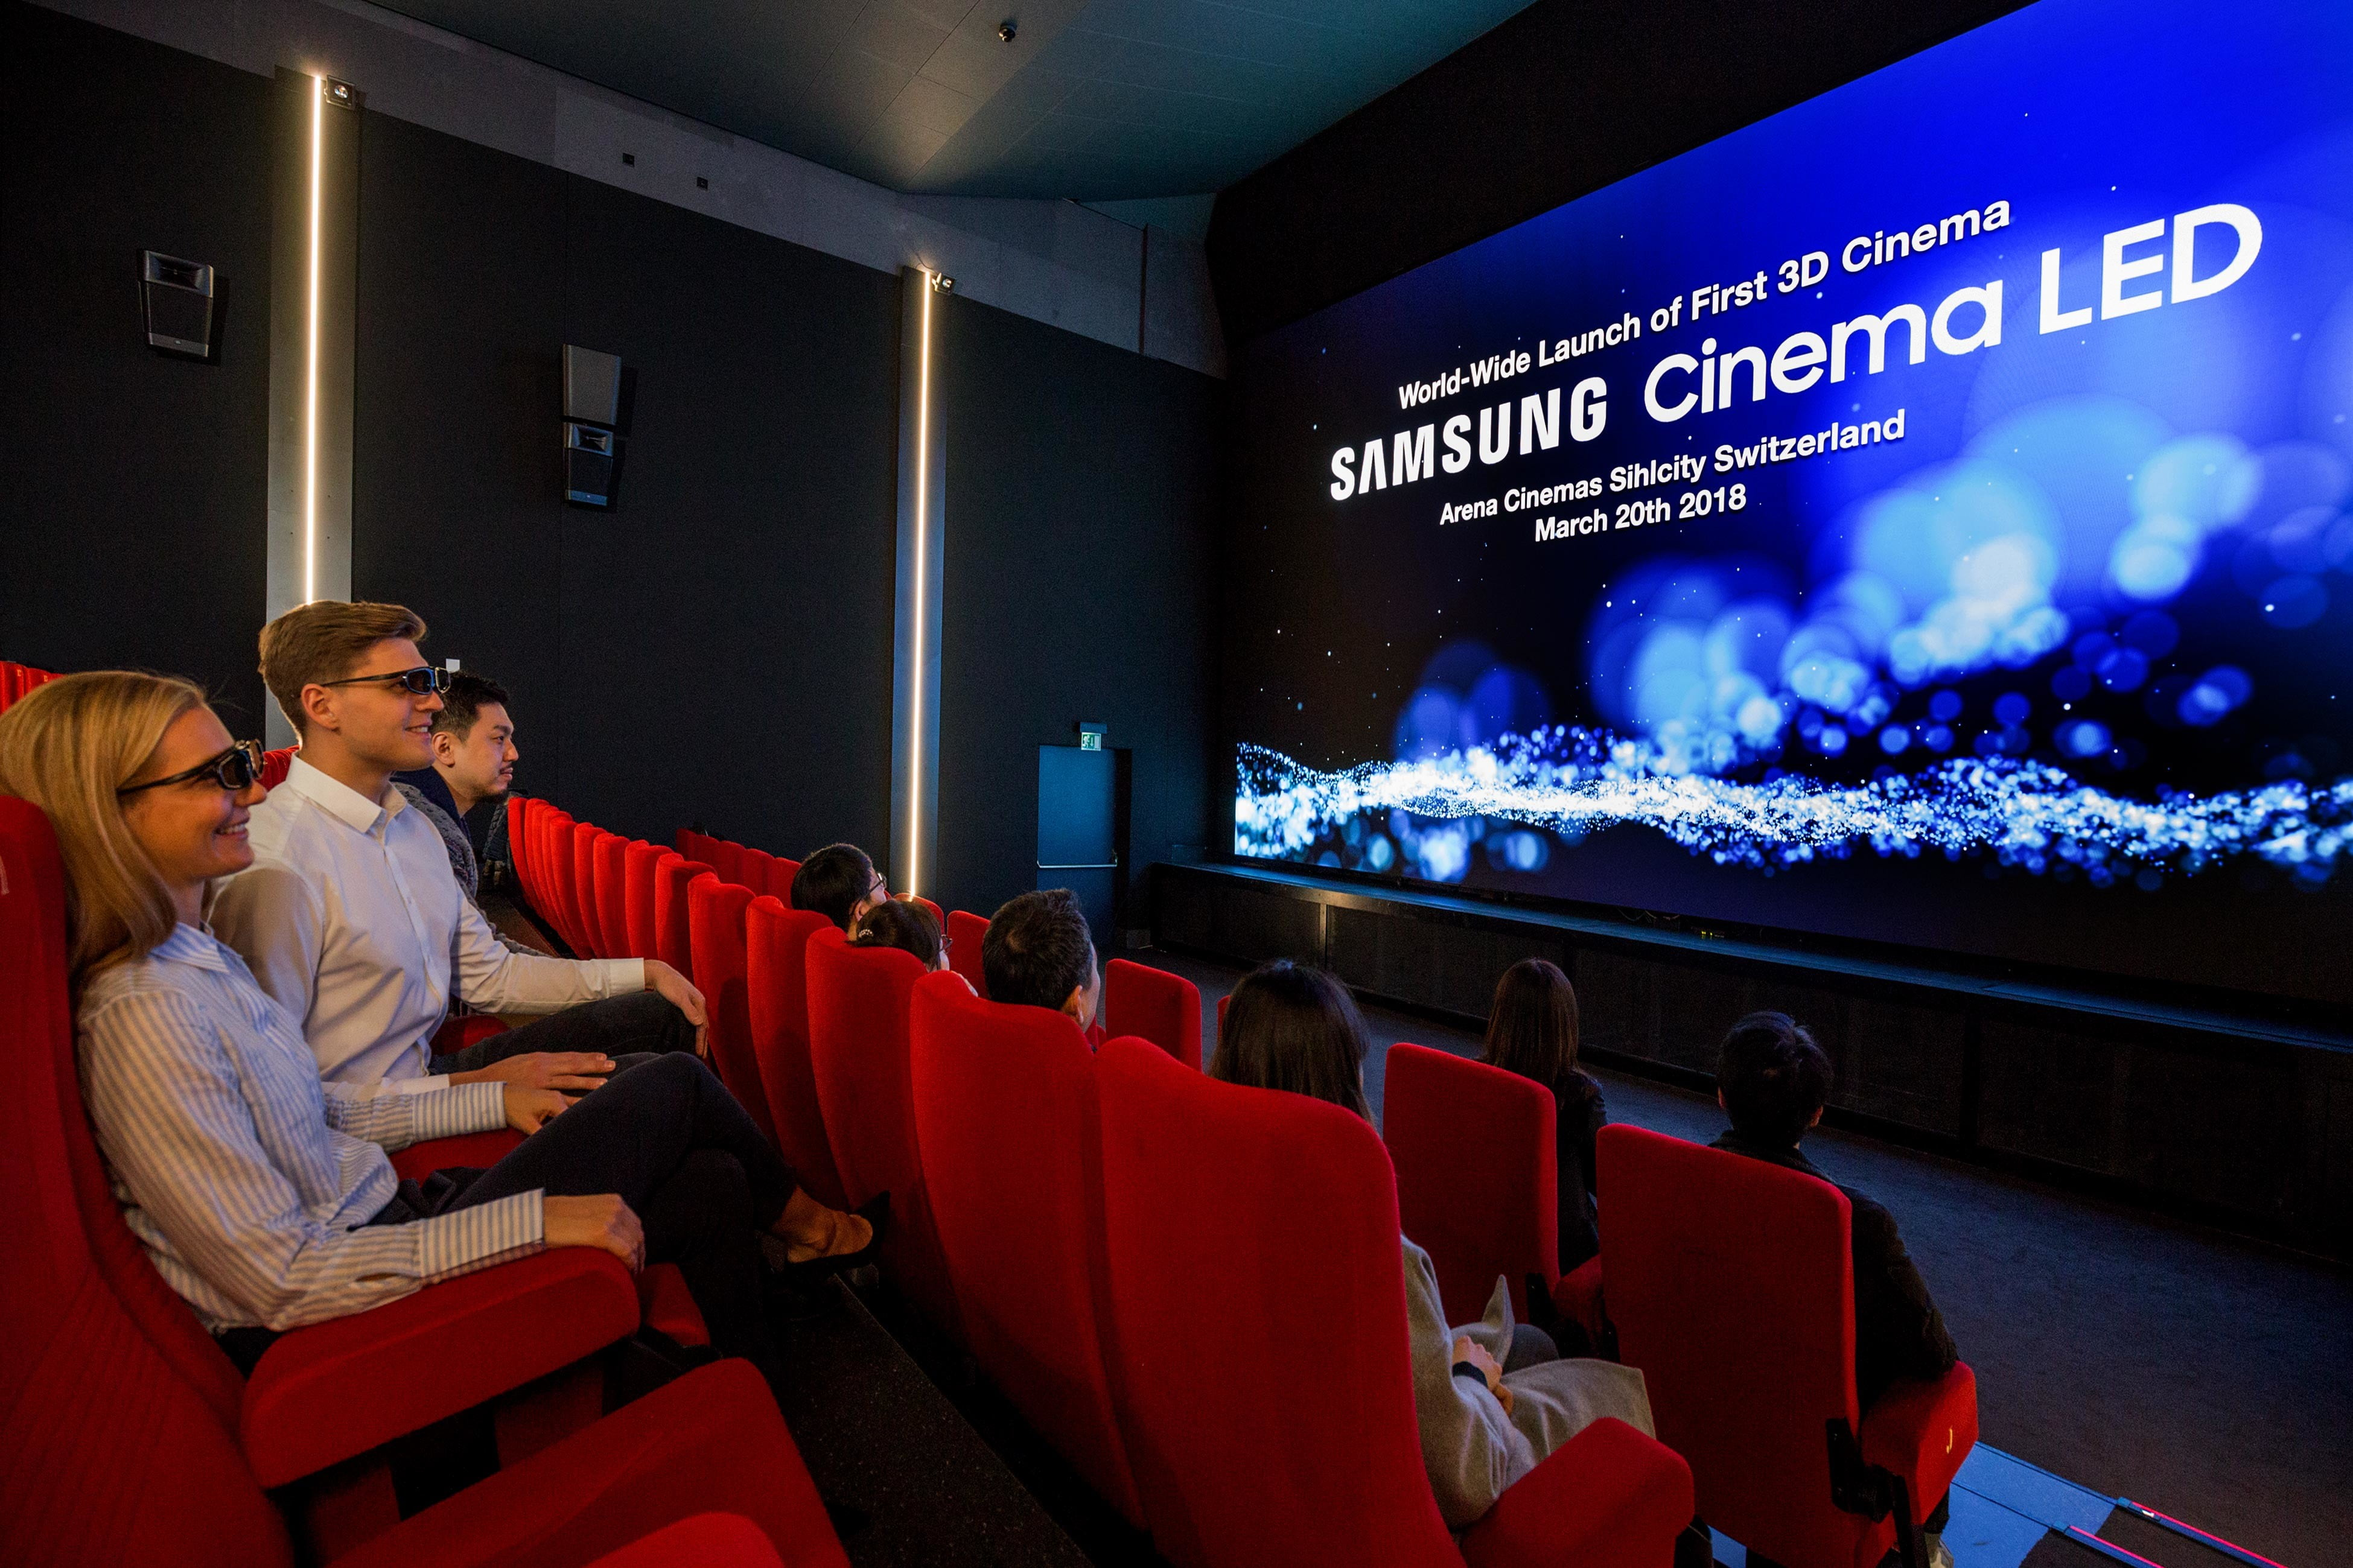 Projecteur Led Exterieur Samsung's 34-foot Onyx Led Tv Could Change Movie Theaters